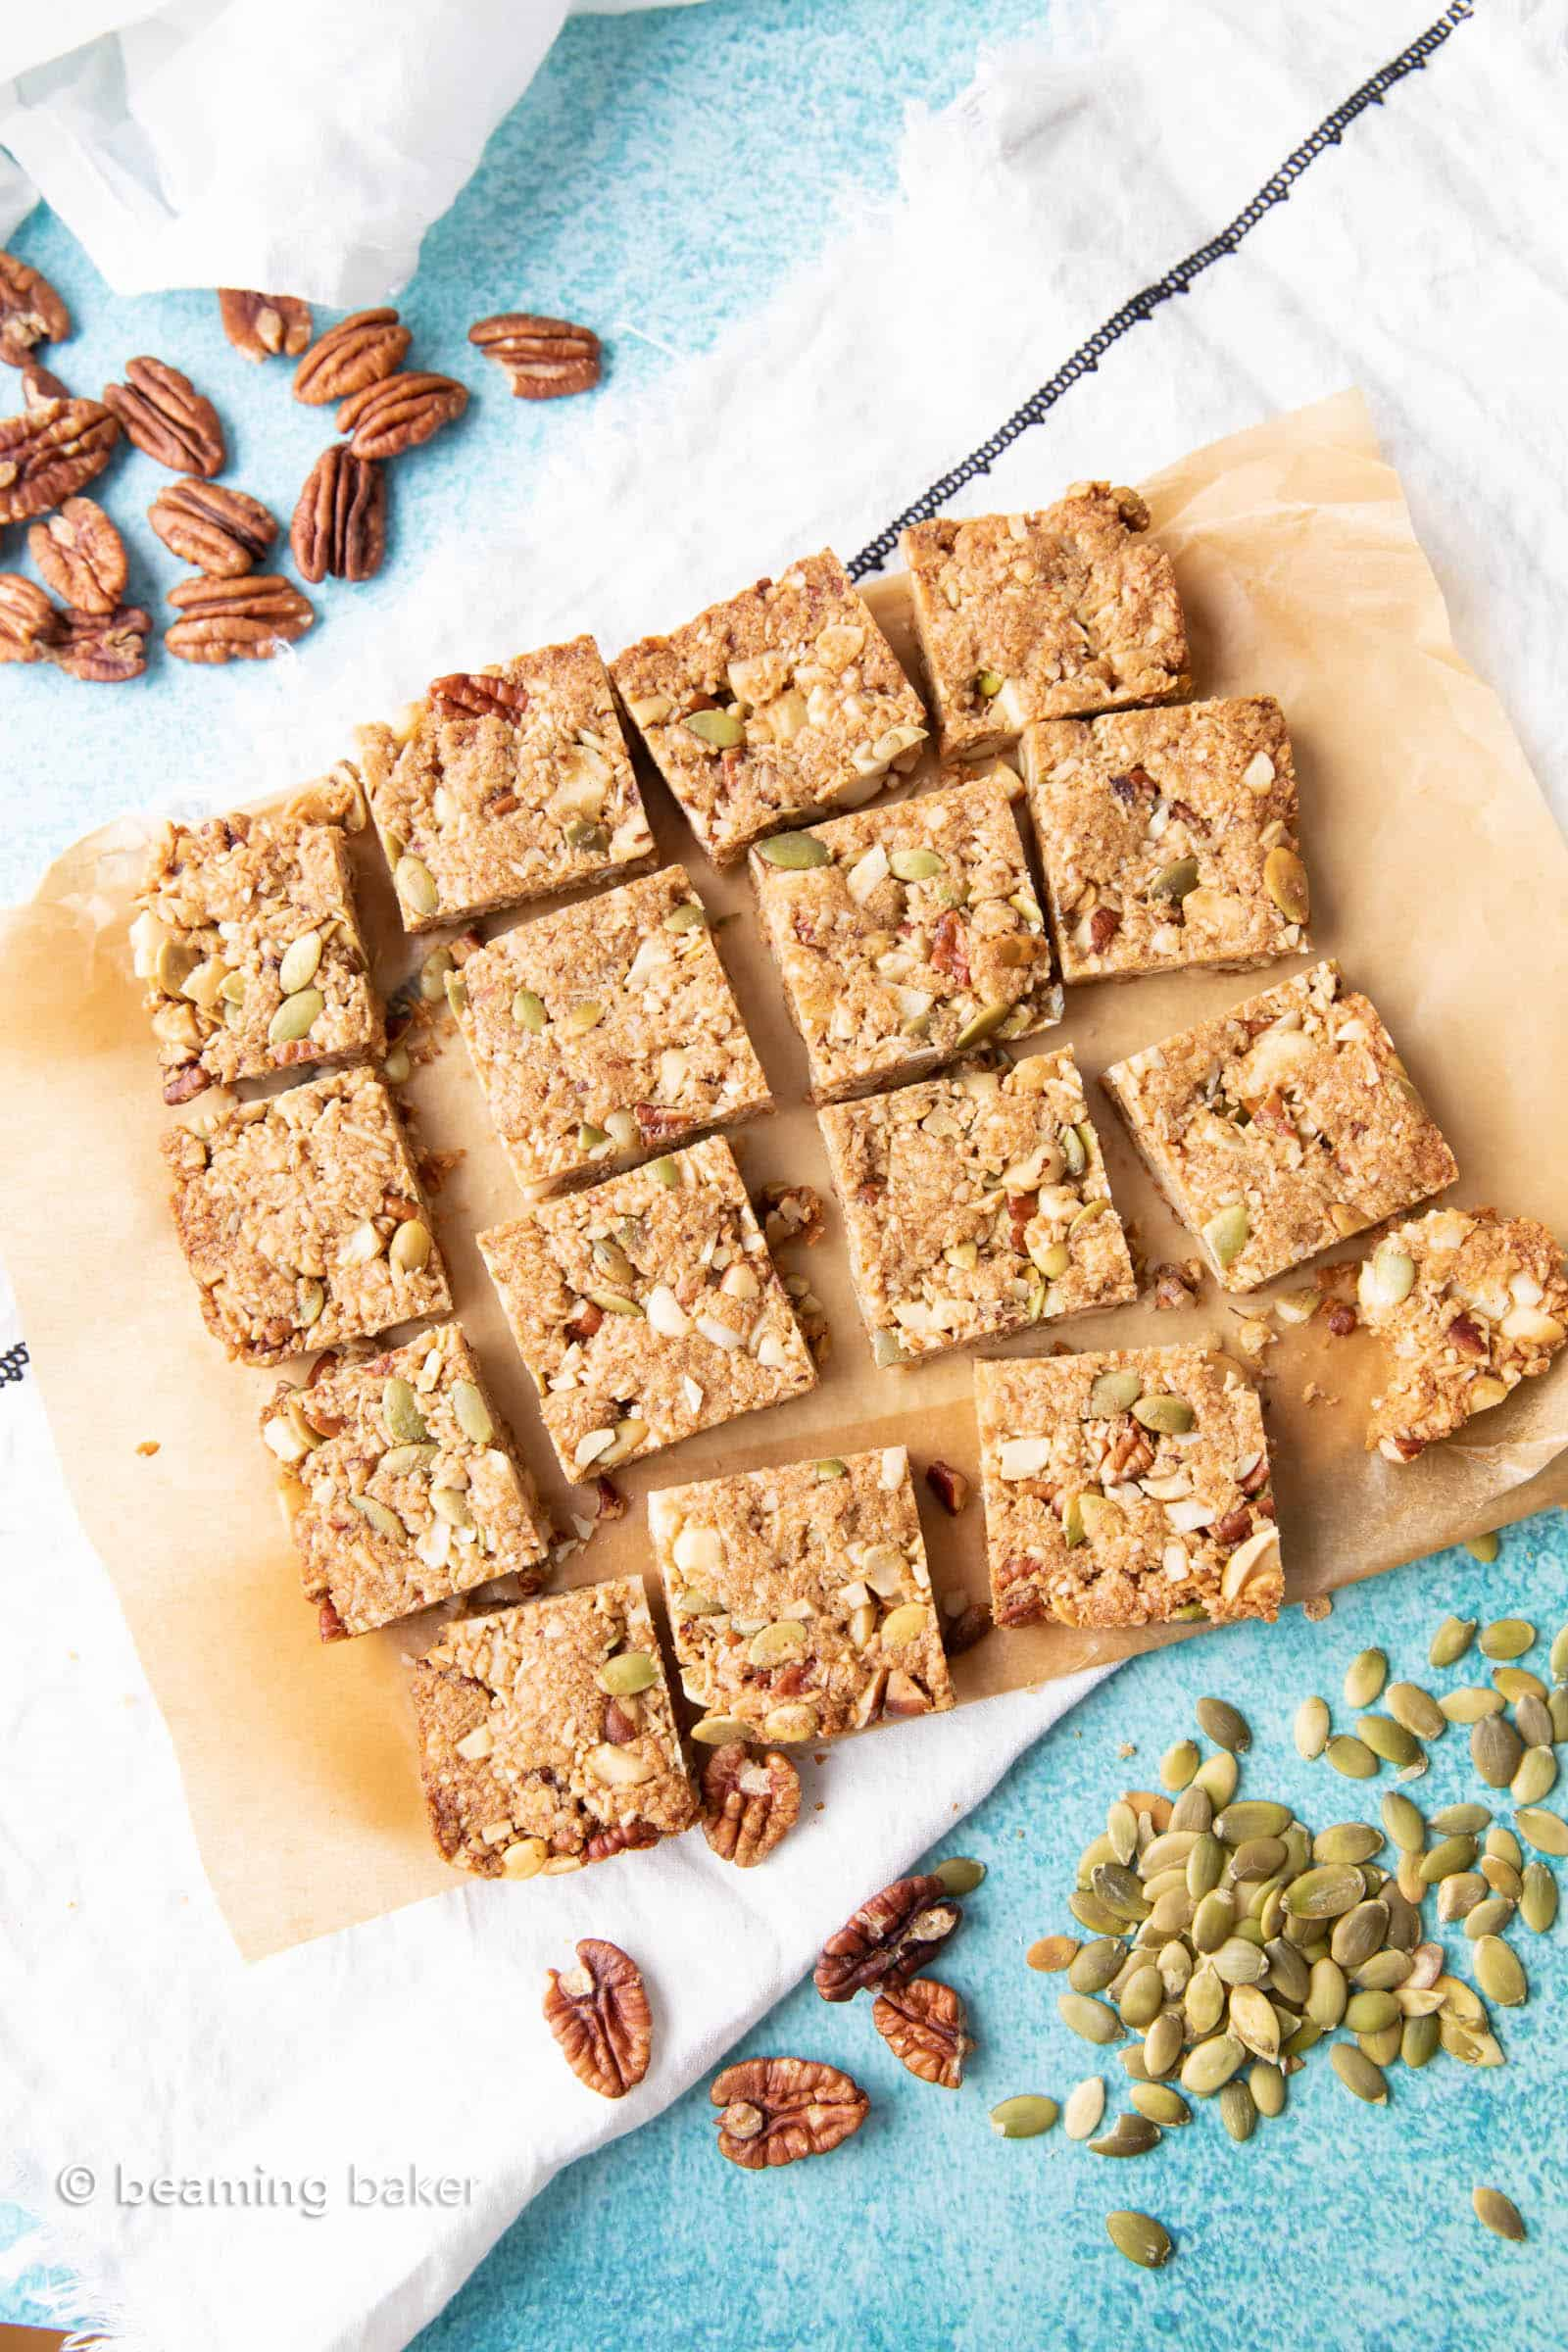 Keto Snack Bars Recipe: sweet & salty keto snack bars that are crispy on the outside, soft on the inside with a crunchy texture. Surprisingly keto & delightfully delicious. #Keto #LowCarb #SnackBars #KetoSnacks | Recipe at BeamingBaker.com